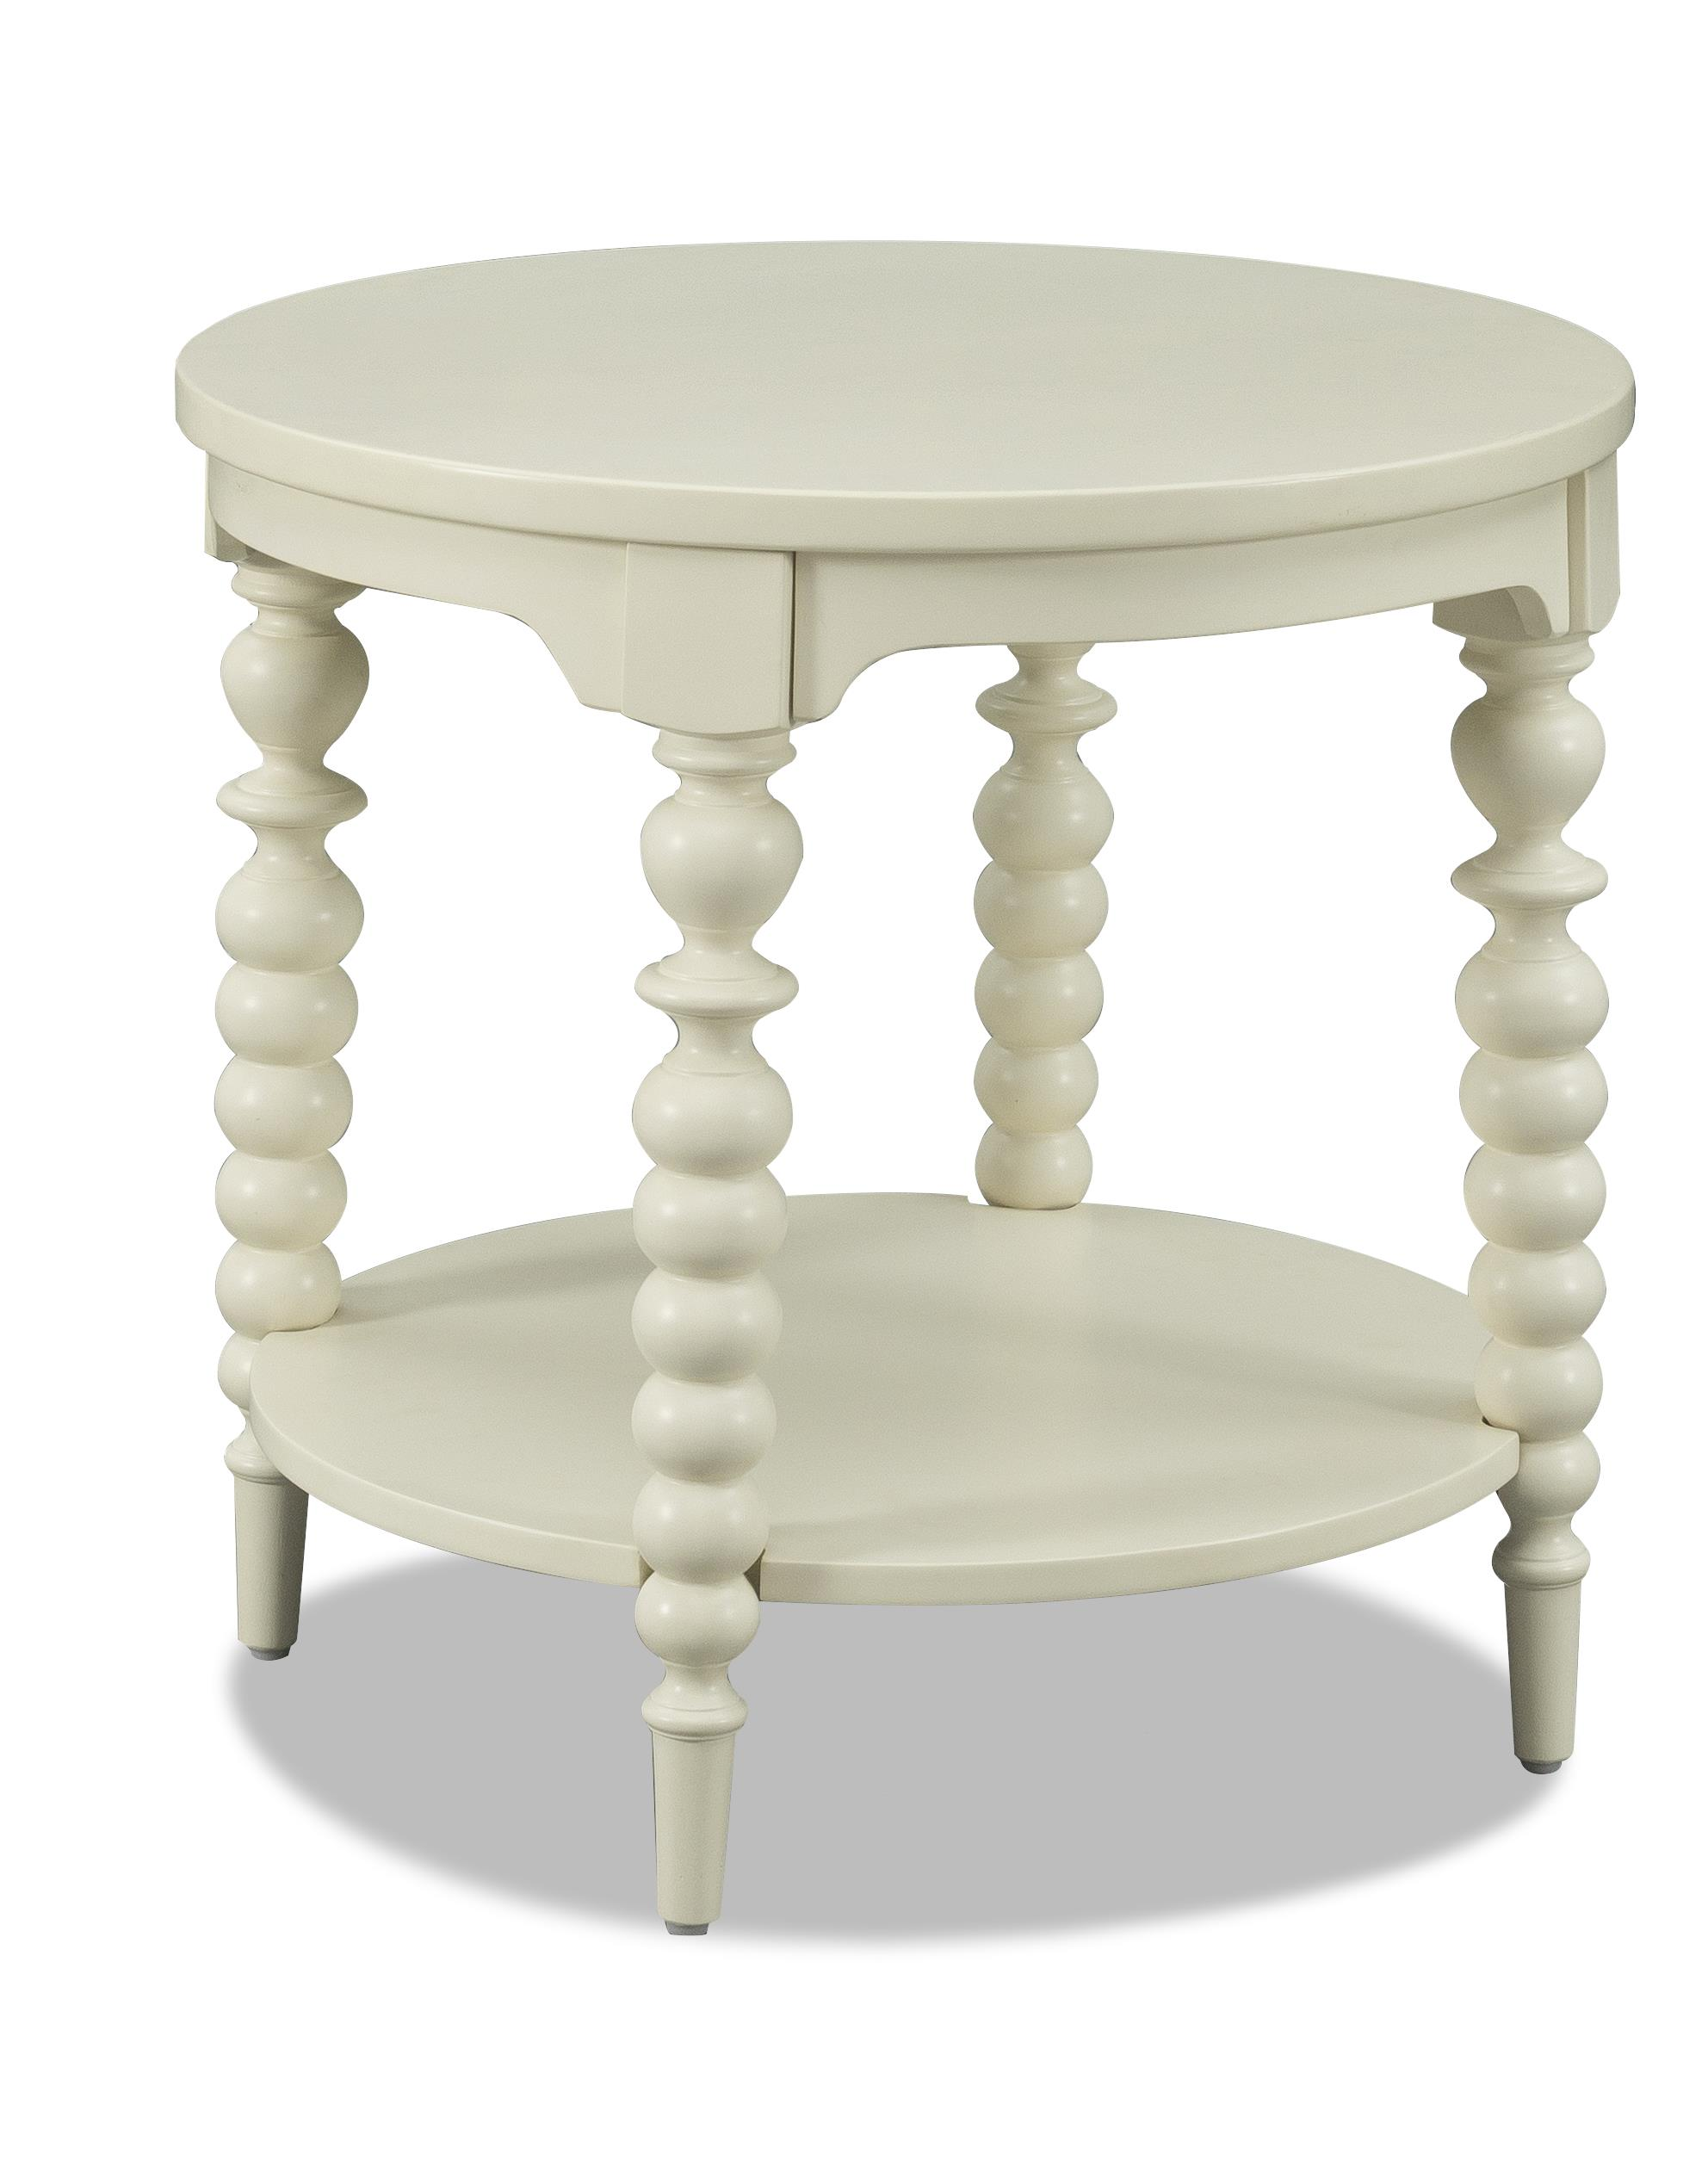 Emerson End Table by Klaussner International at Catalog Outlet